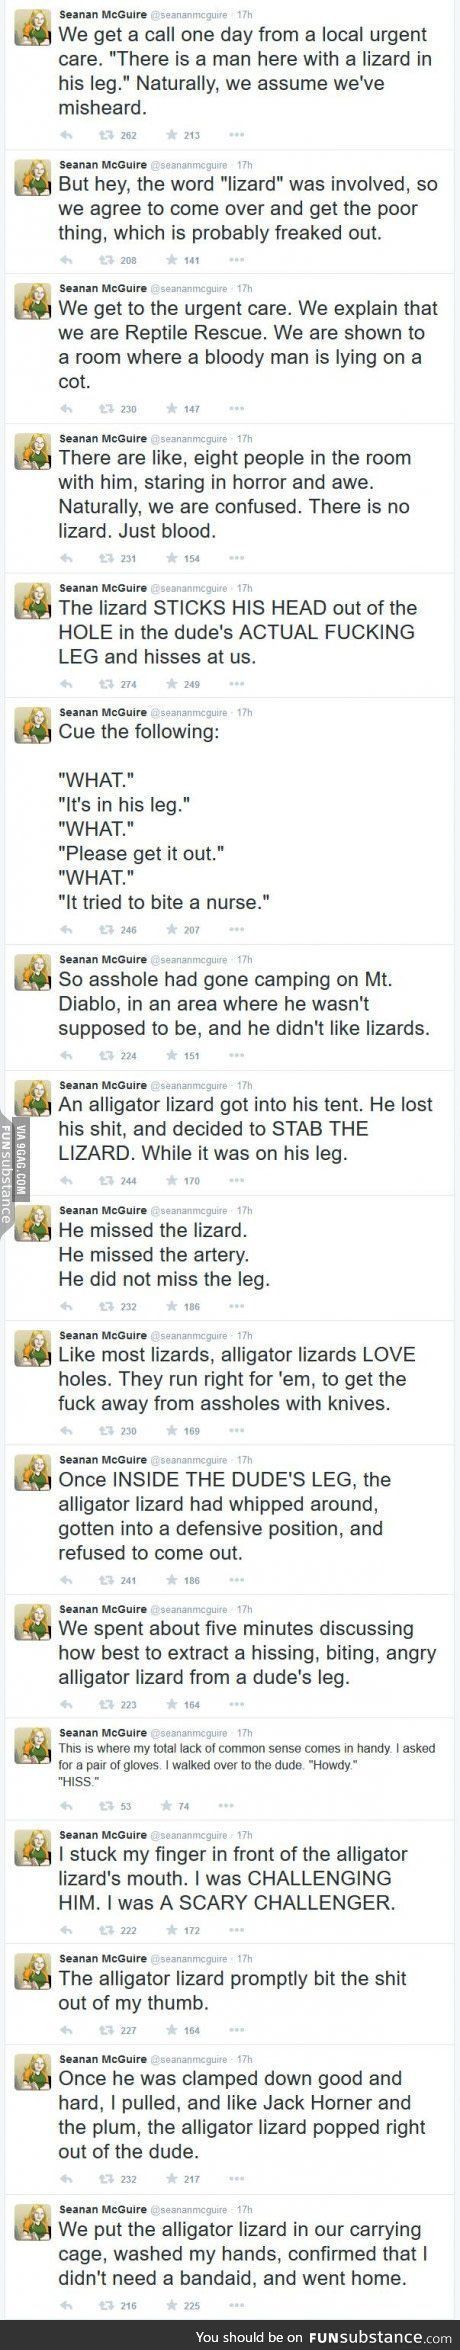 A lizard in a leg. This is crazy. And hilarious.